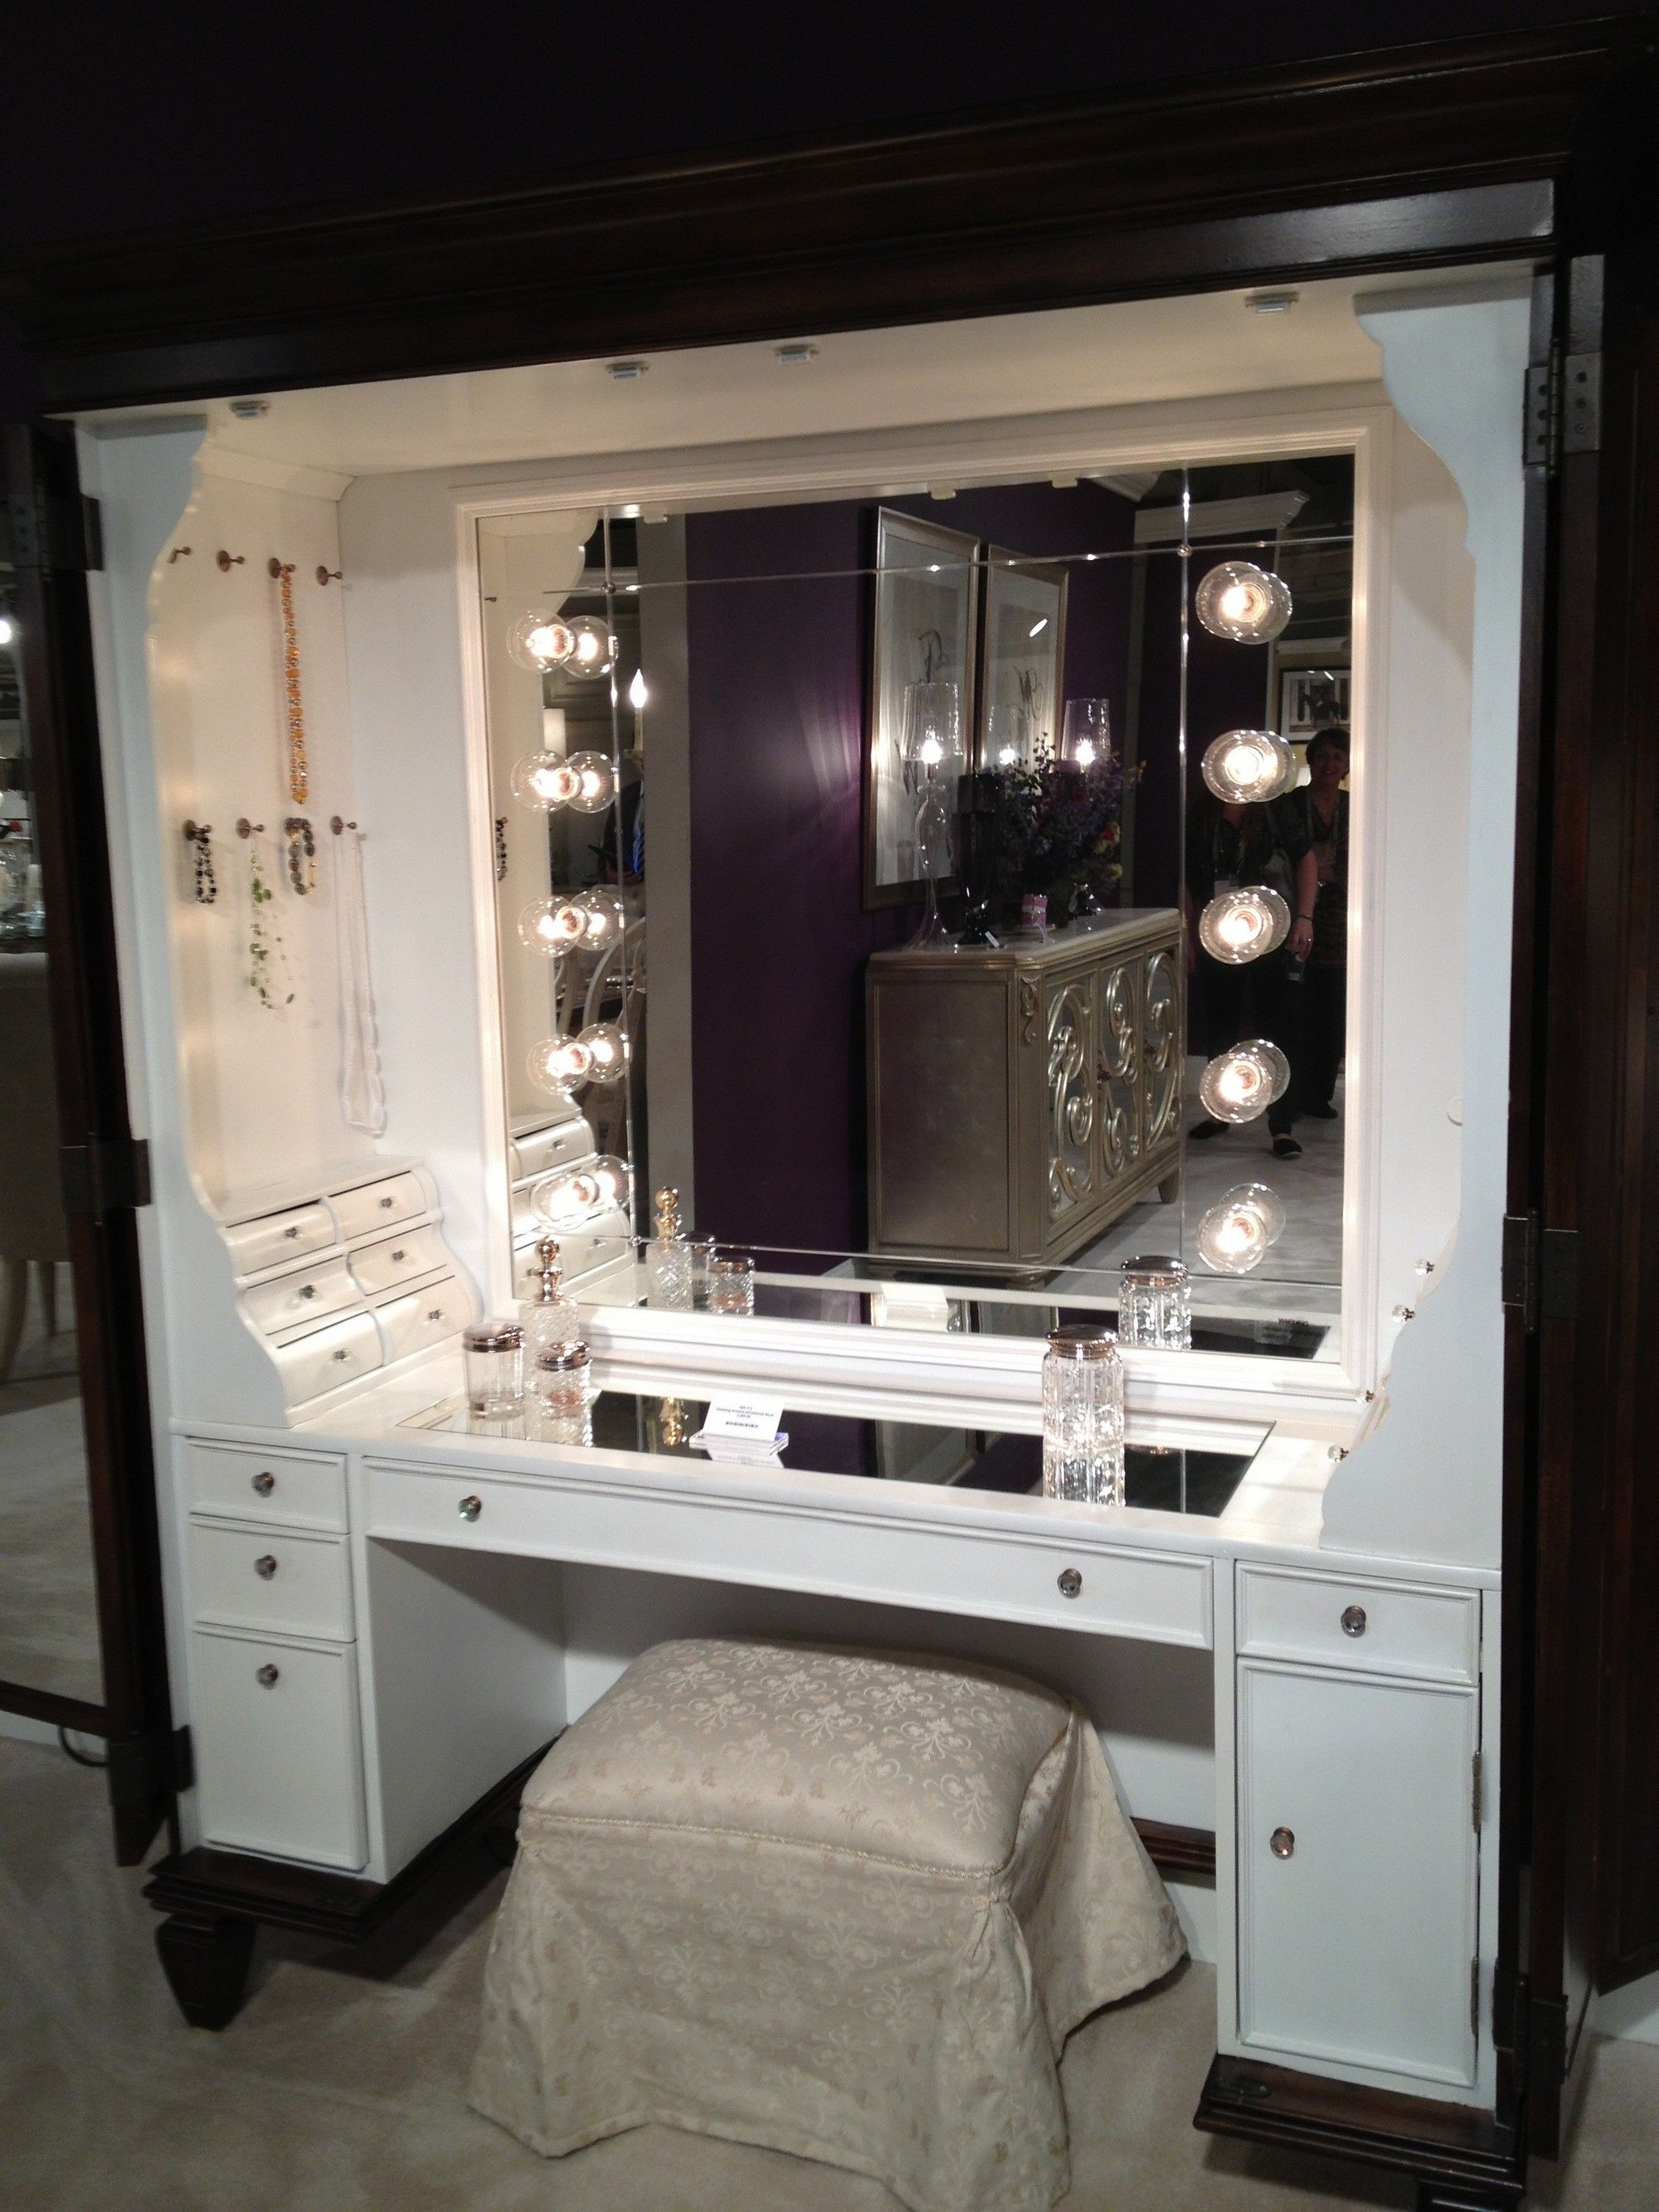 bulbs makeup design up mirror solid lighted insight most best house new doherty light lights vanity modern with and amazing